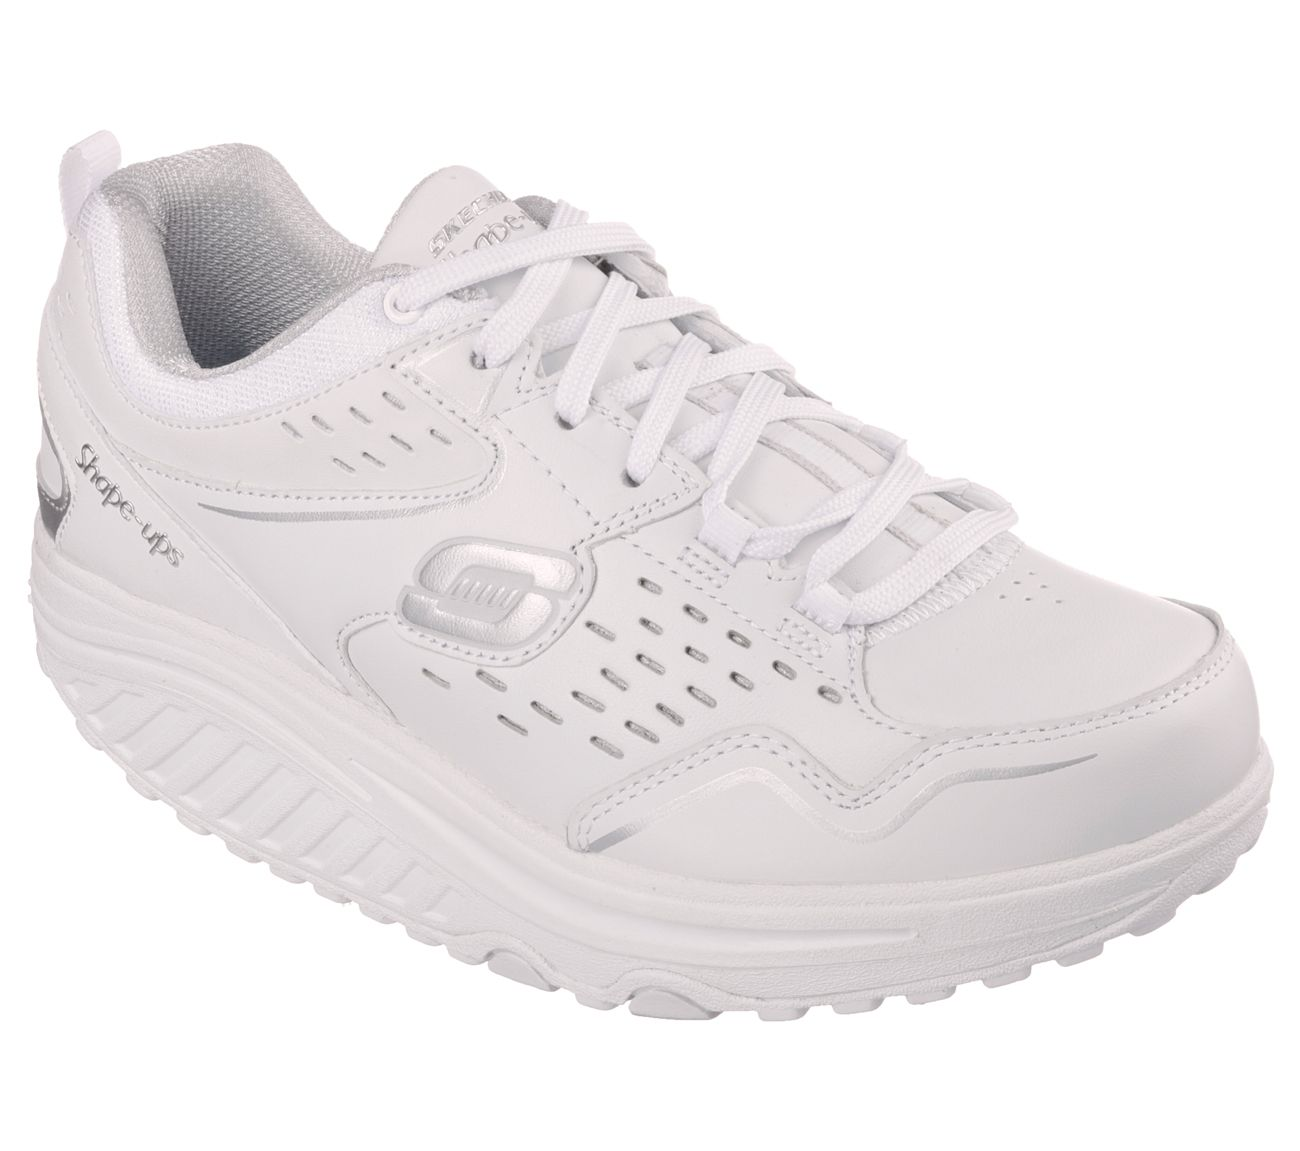 Shape ups 2.0 Perfect Comfort | Skechers shape ups, Shoes